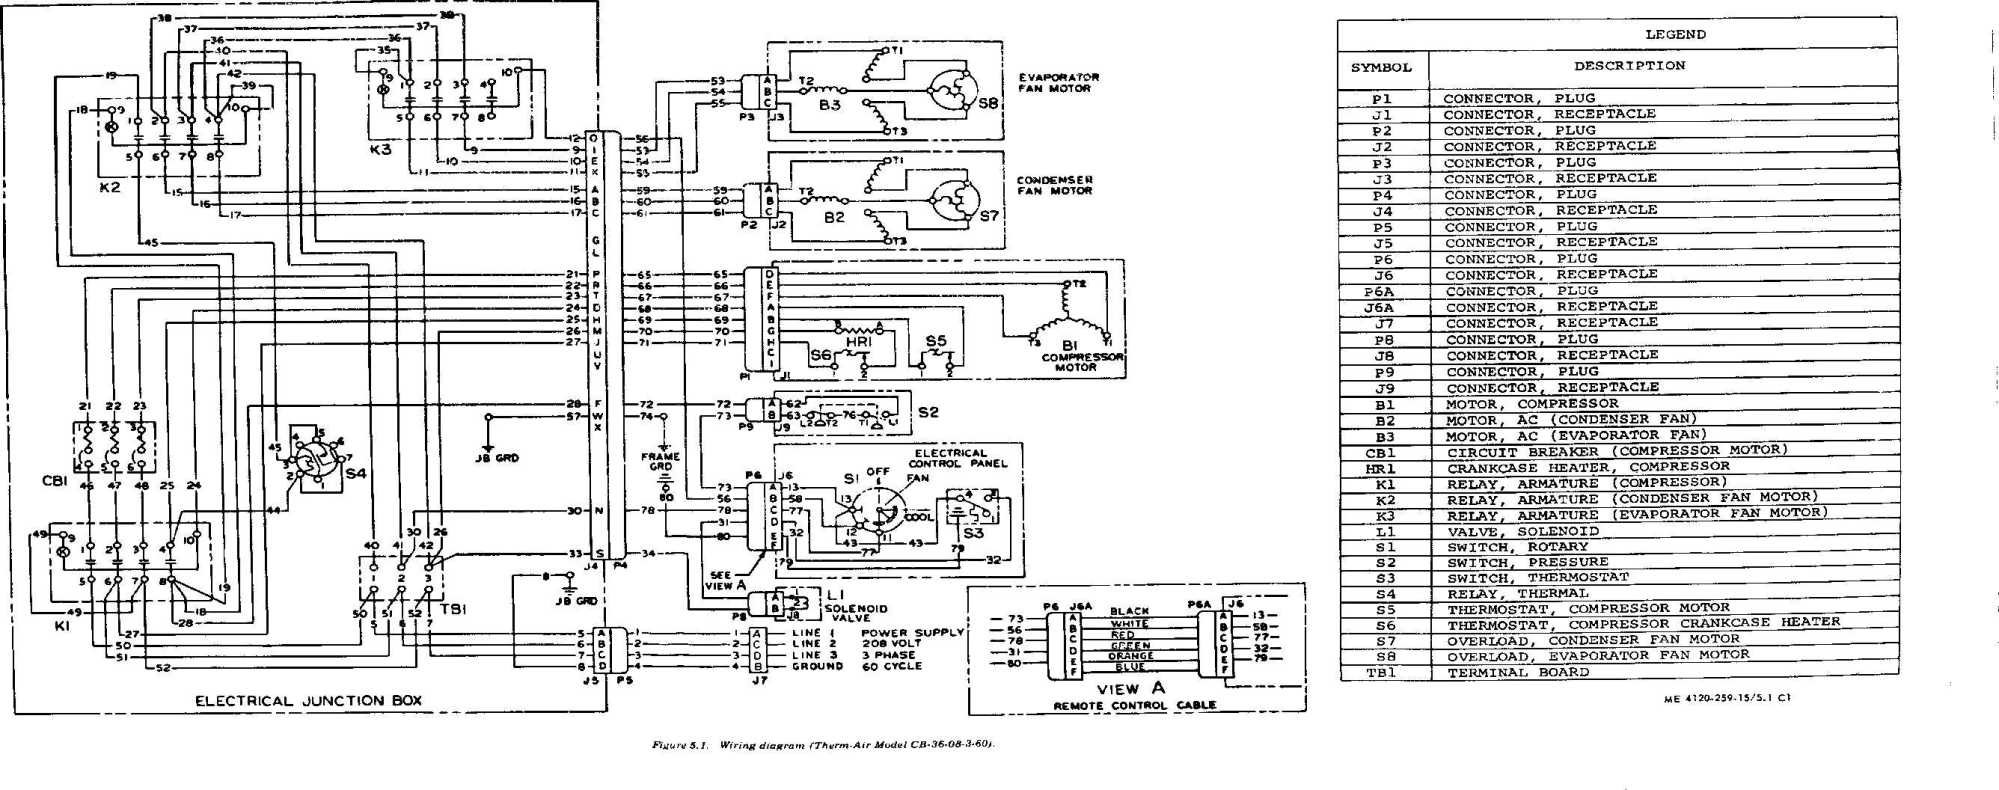 hight resolution of trane air conditioning schematics wiring diagram today trane hvac wiring diagrams train hvac wiring diagrams